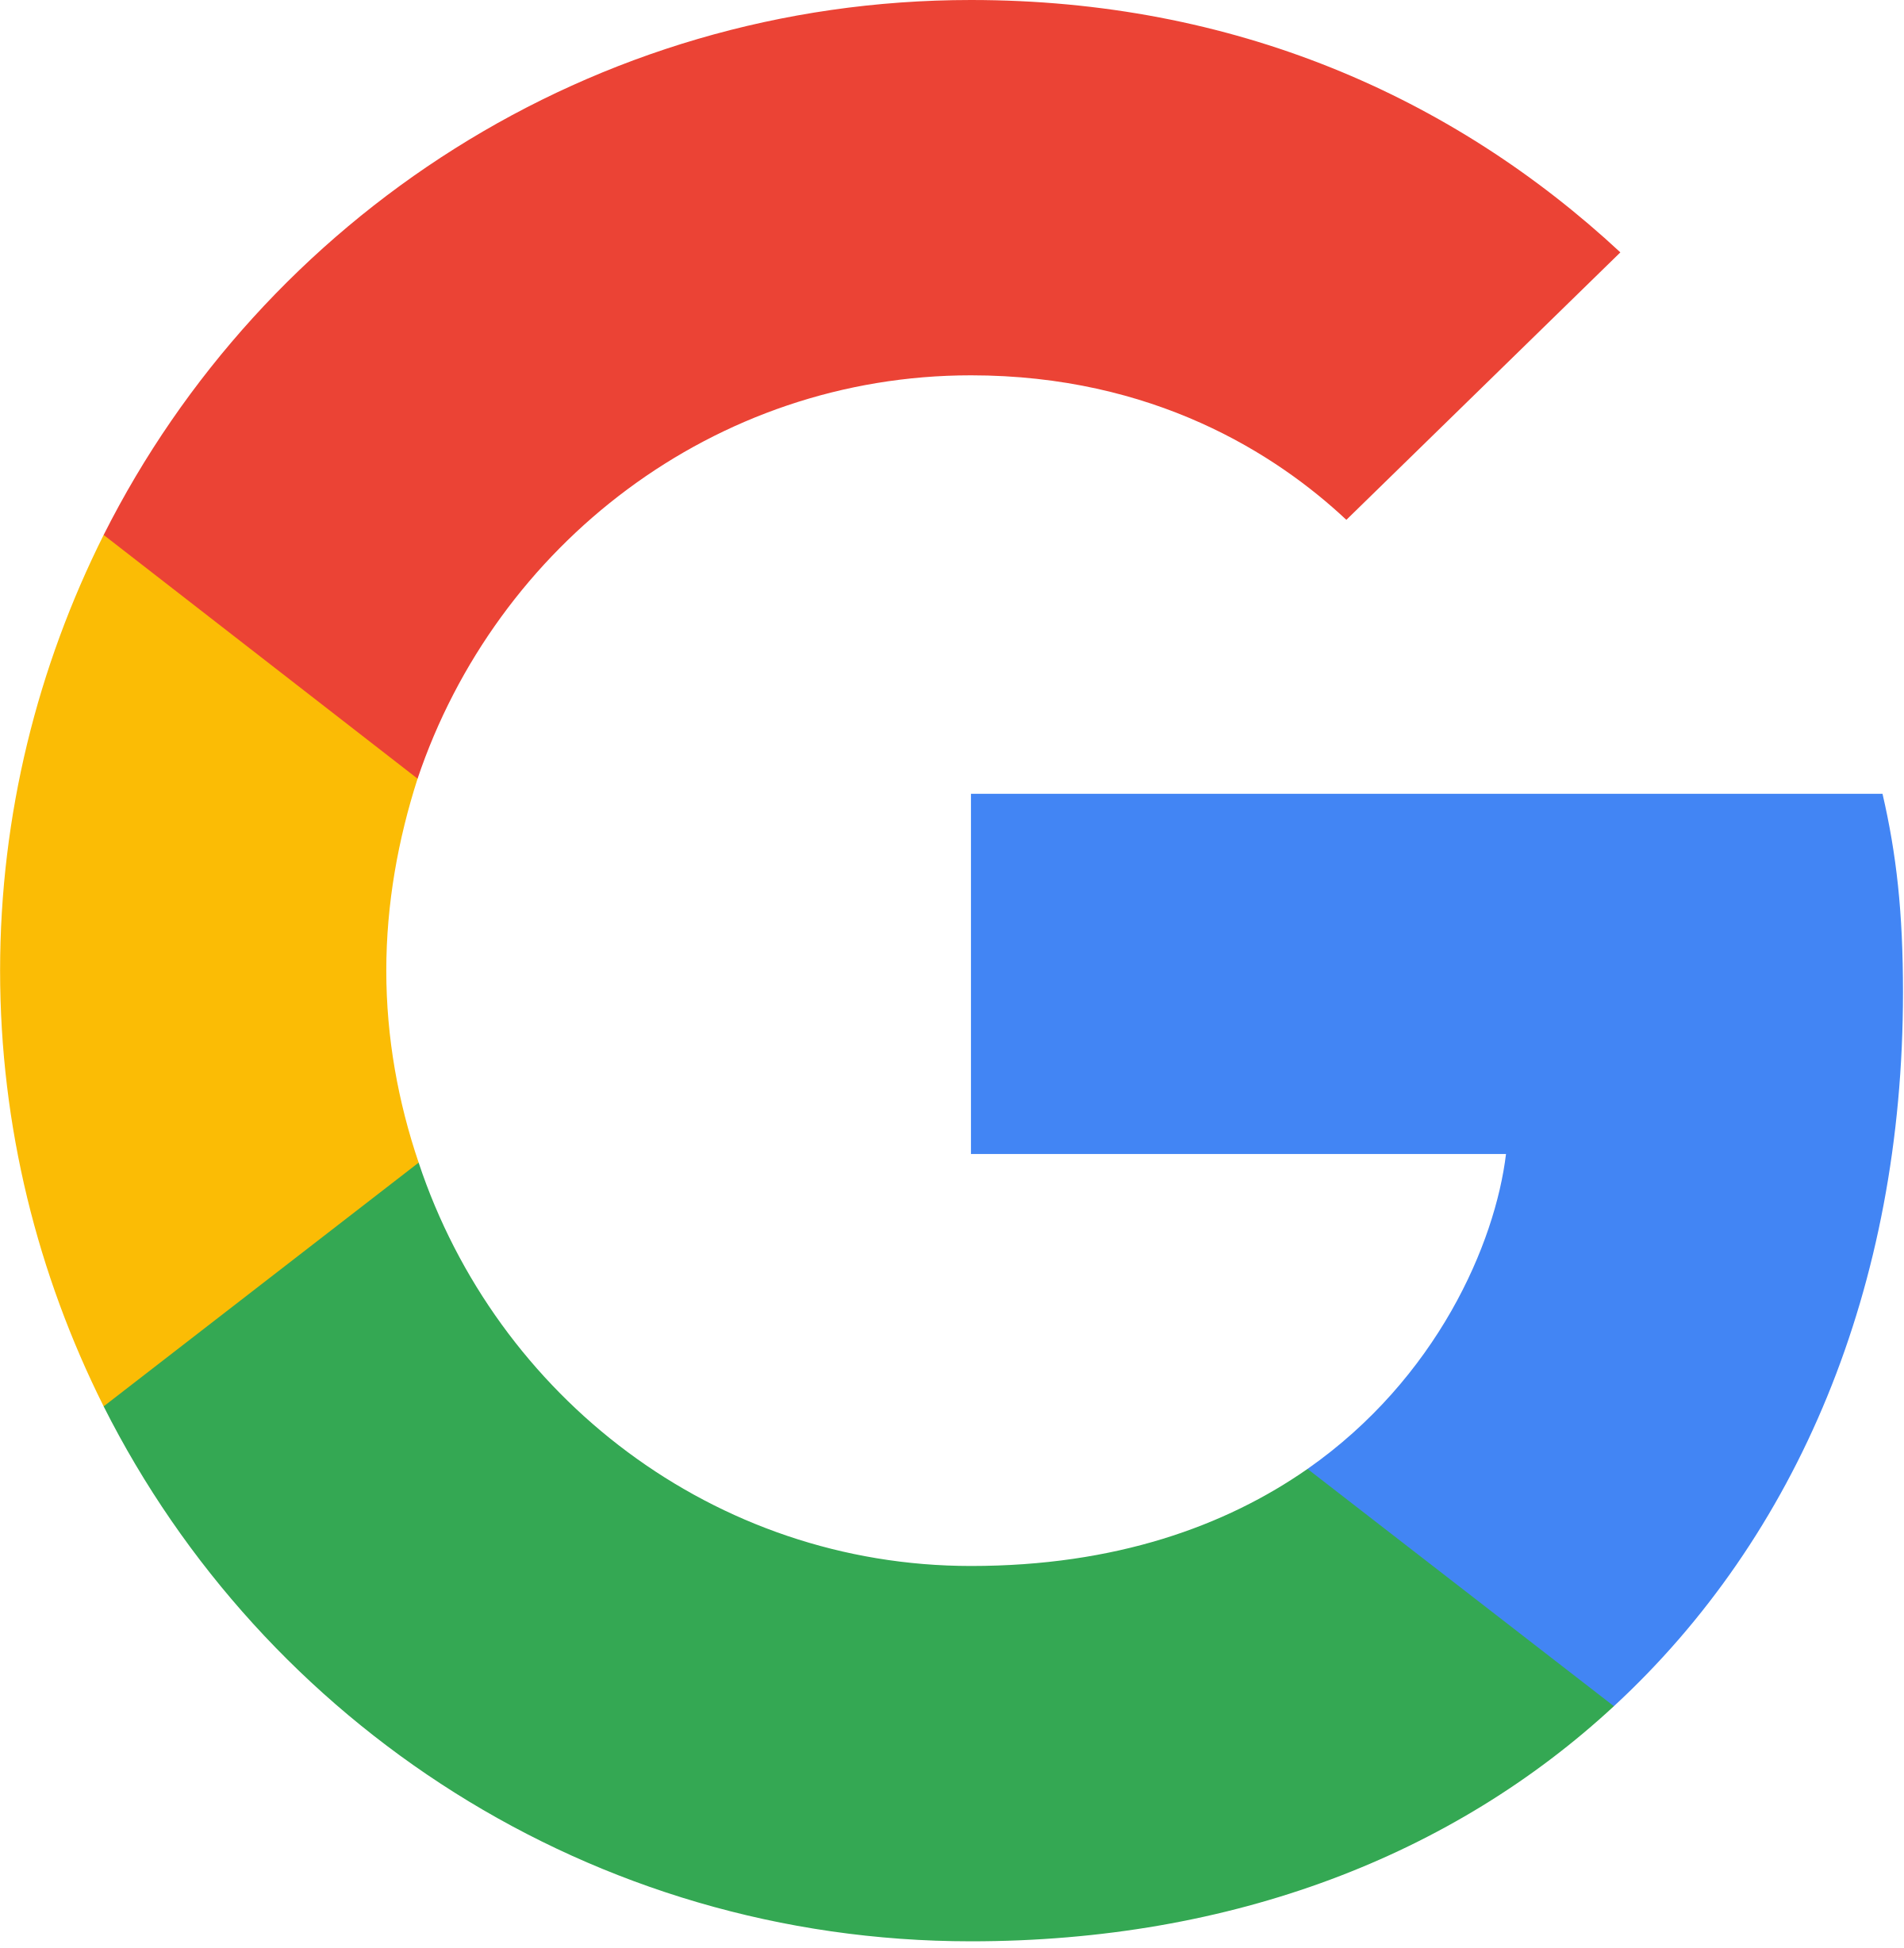 google logo png google icon logo png transparent svg vector bie supply #9825